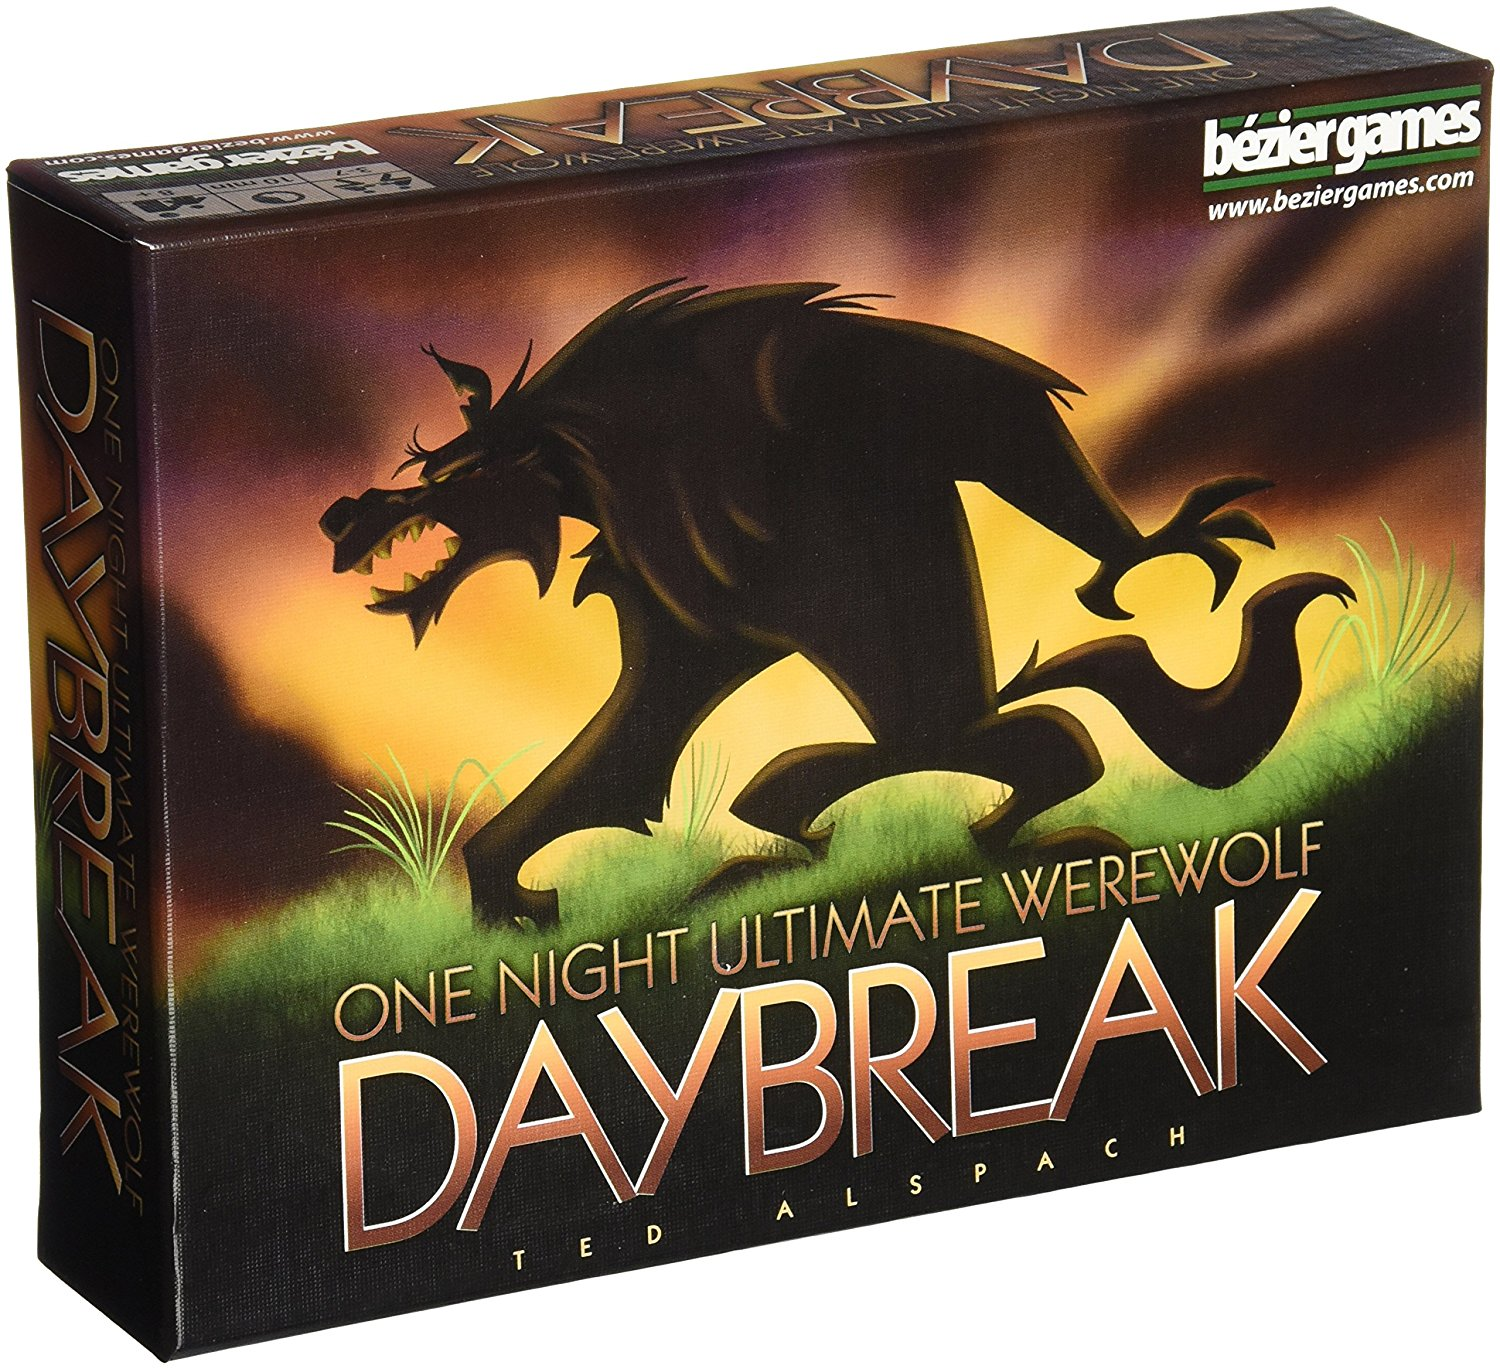 Ultimate Werewolf Daybreak